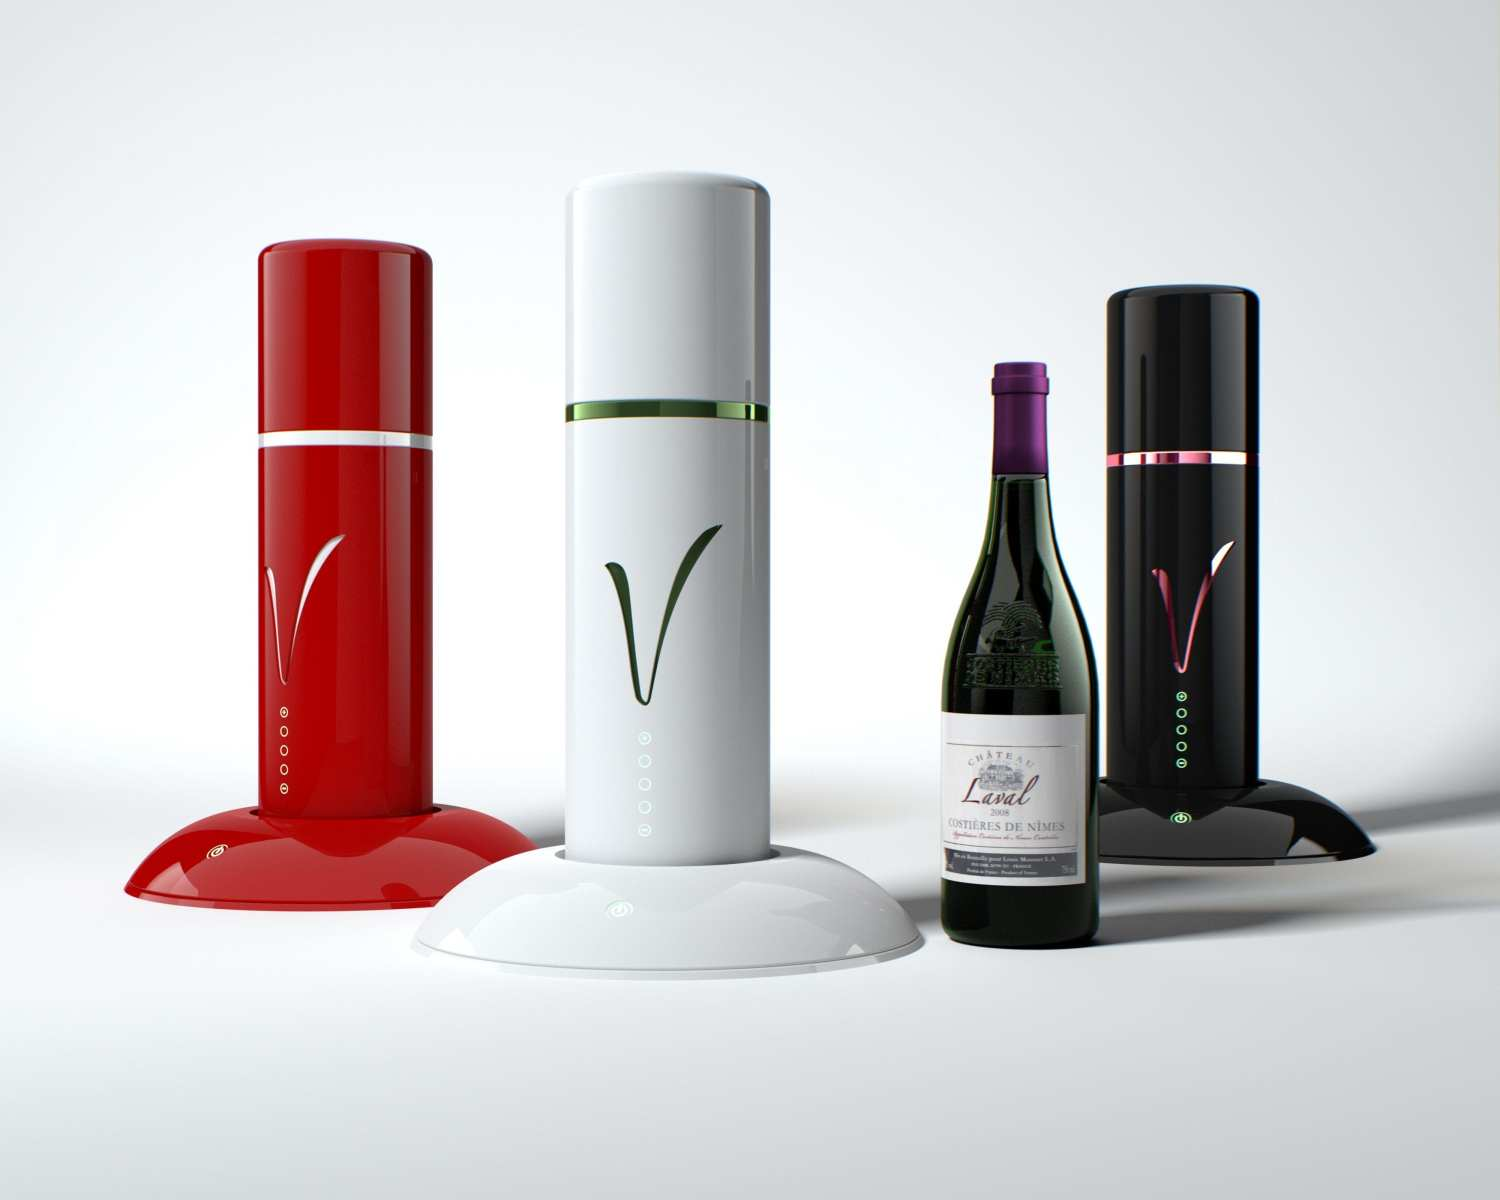 FARADAY - Vino Novo version 1.0